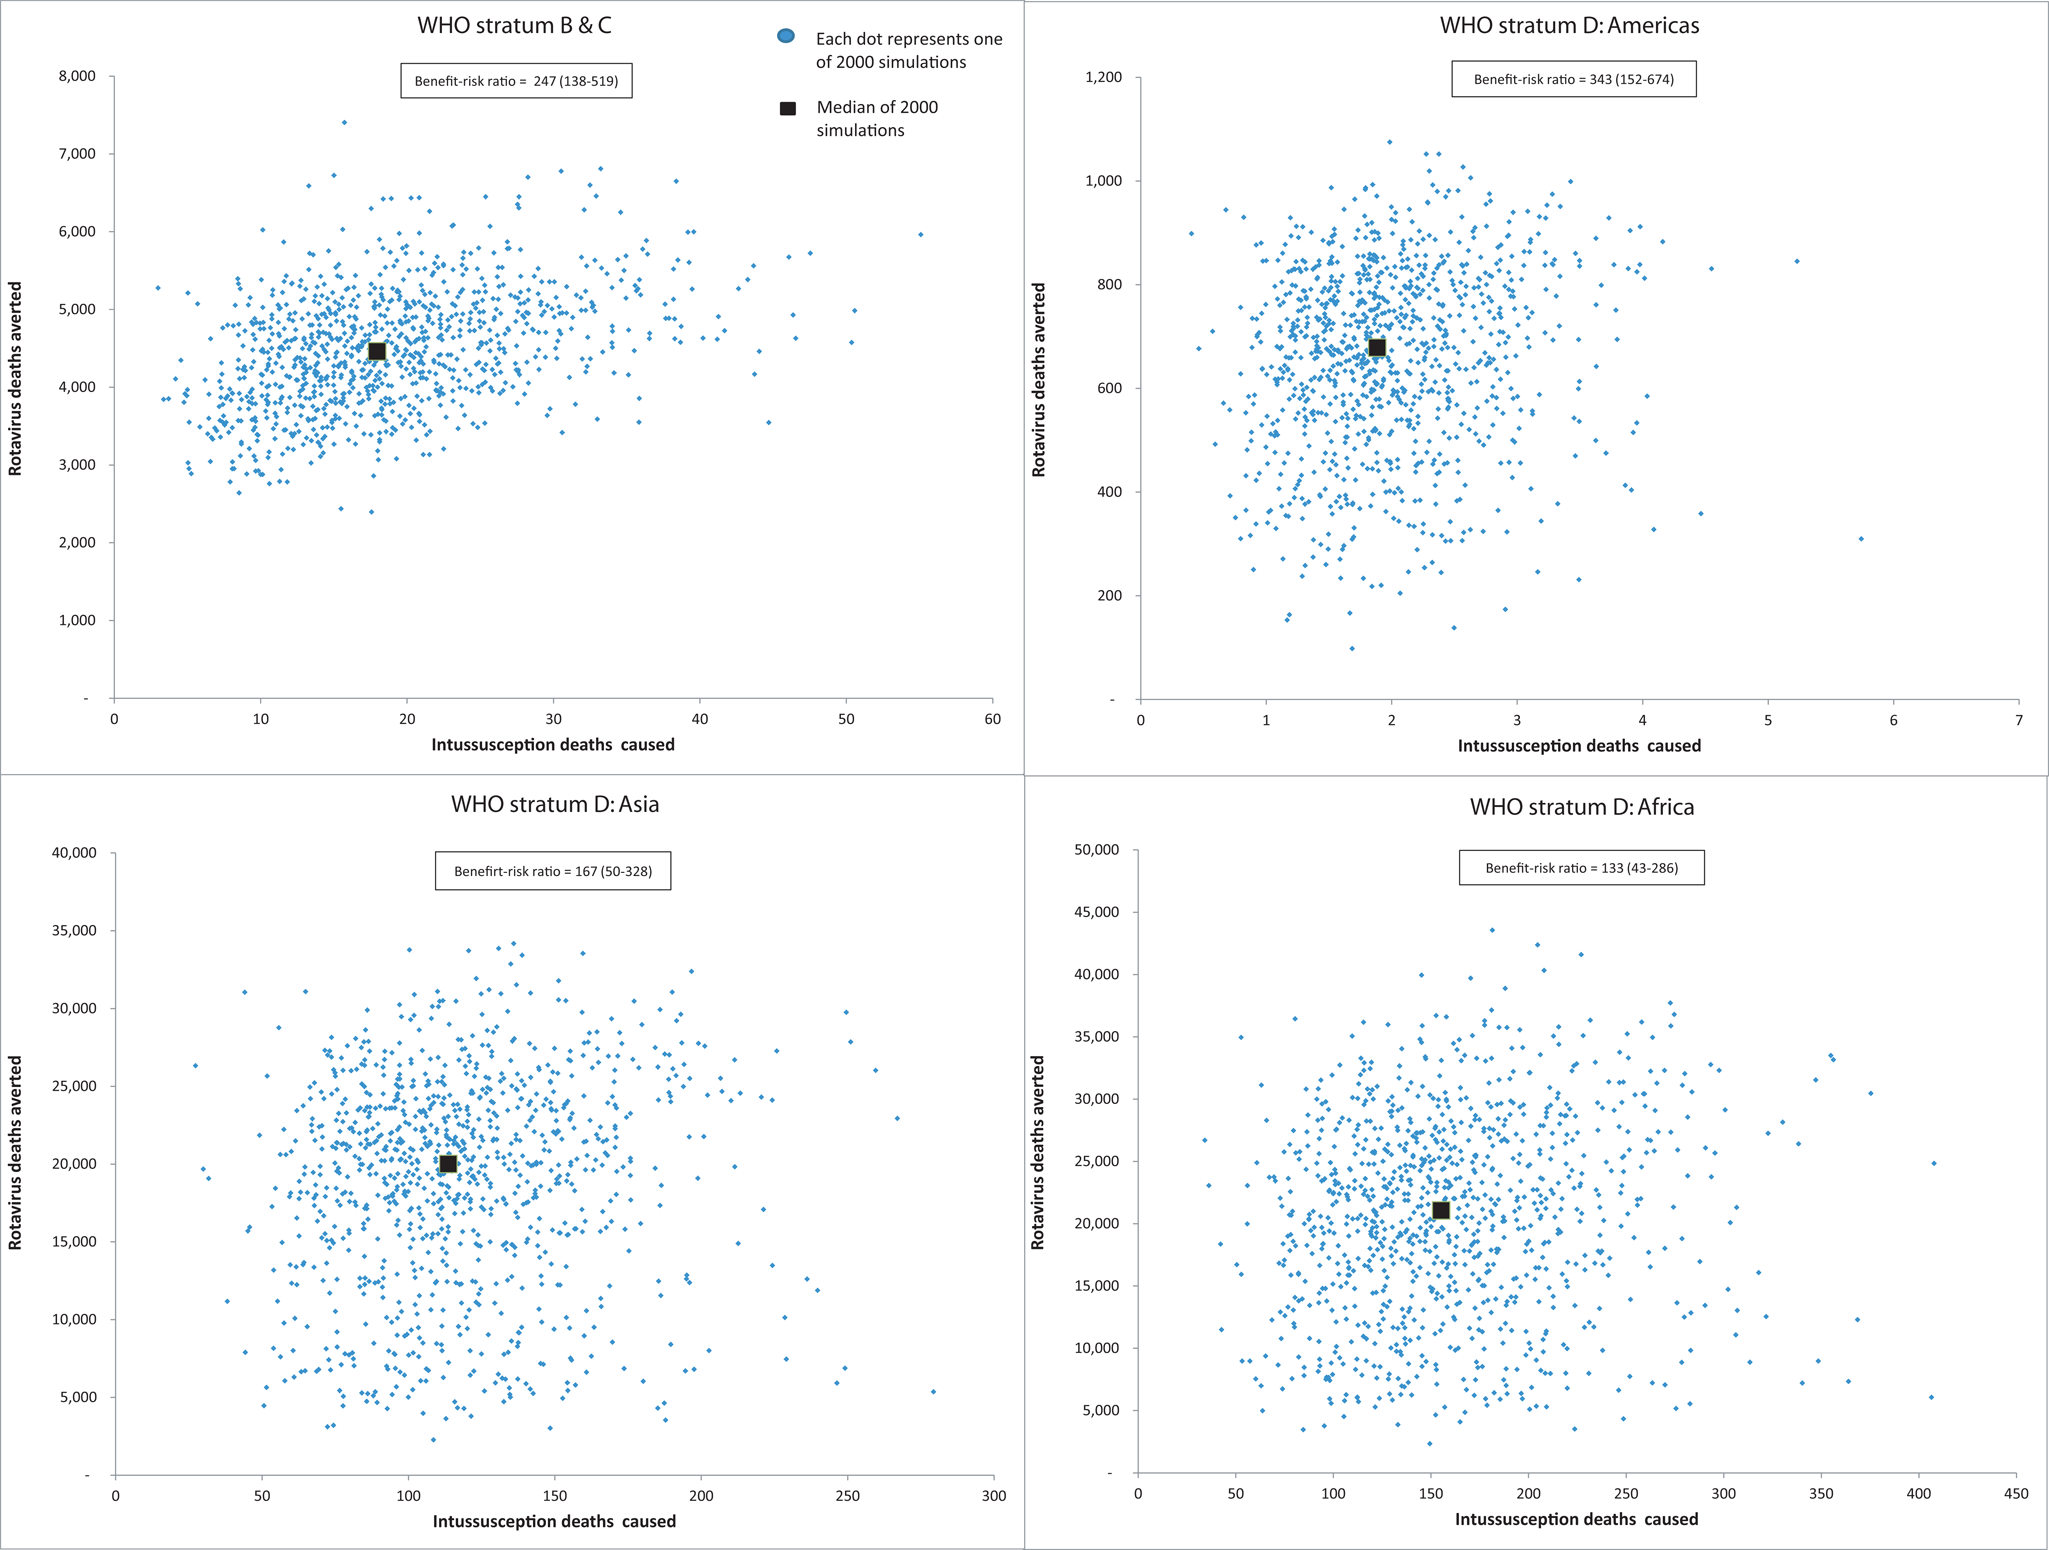 WHO region specific analysis of relationship between esimated number of rotavirus gastroenteritis deaths avoided versus intussusception deaths caused by removal of the age restrictions for rotavirus vaccination.